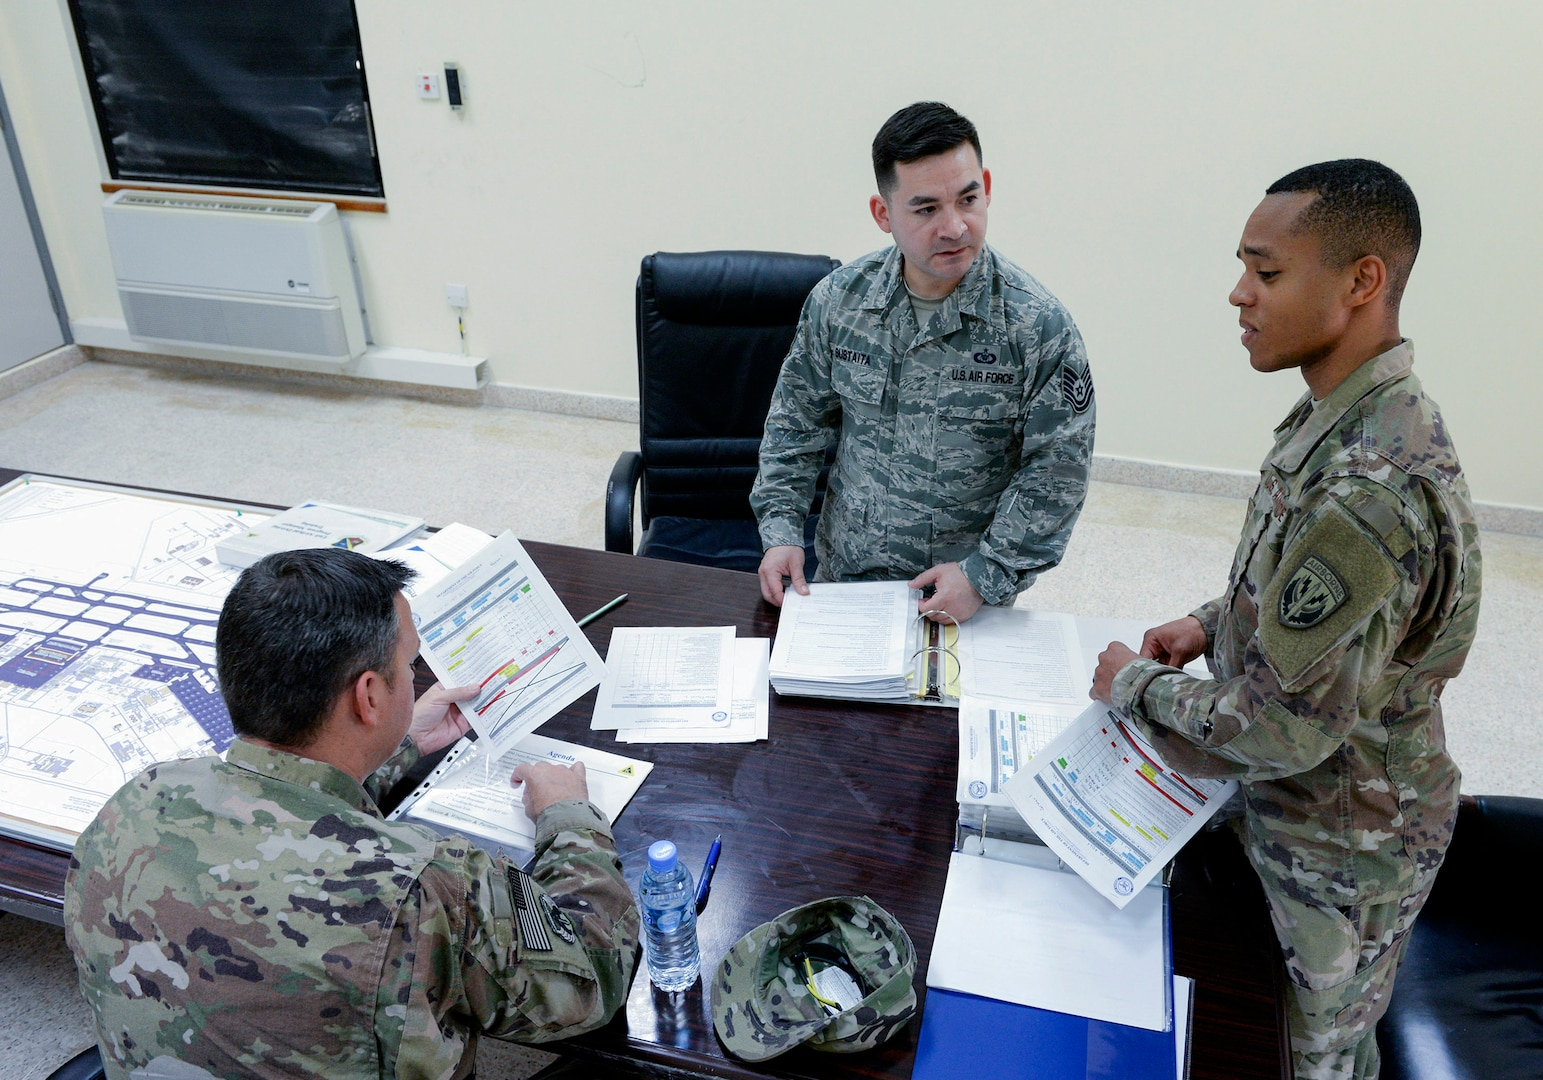 U.S. Air Force Tech. Sgt. Santino Sustaita, airfield driving program manager assigned to the 379th Expeditionary Office of Strategic Services, center, reviews training material with airfield driving trainers at Al Udeid, Air Force Base, Qatar, June 7, 2017. Airfield Management oversees more than 20 million square feet of airfield at Al Udeid in addition to overseeing the airfield driving program and filing all flight plans for flights arriving to and departing from the base. (U.S. Air National Guard photo by Tech. Sgt. Bradly A. Schneider/Released)